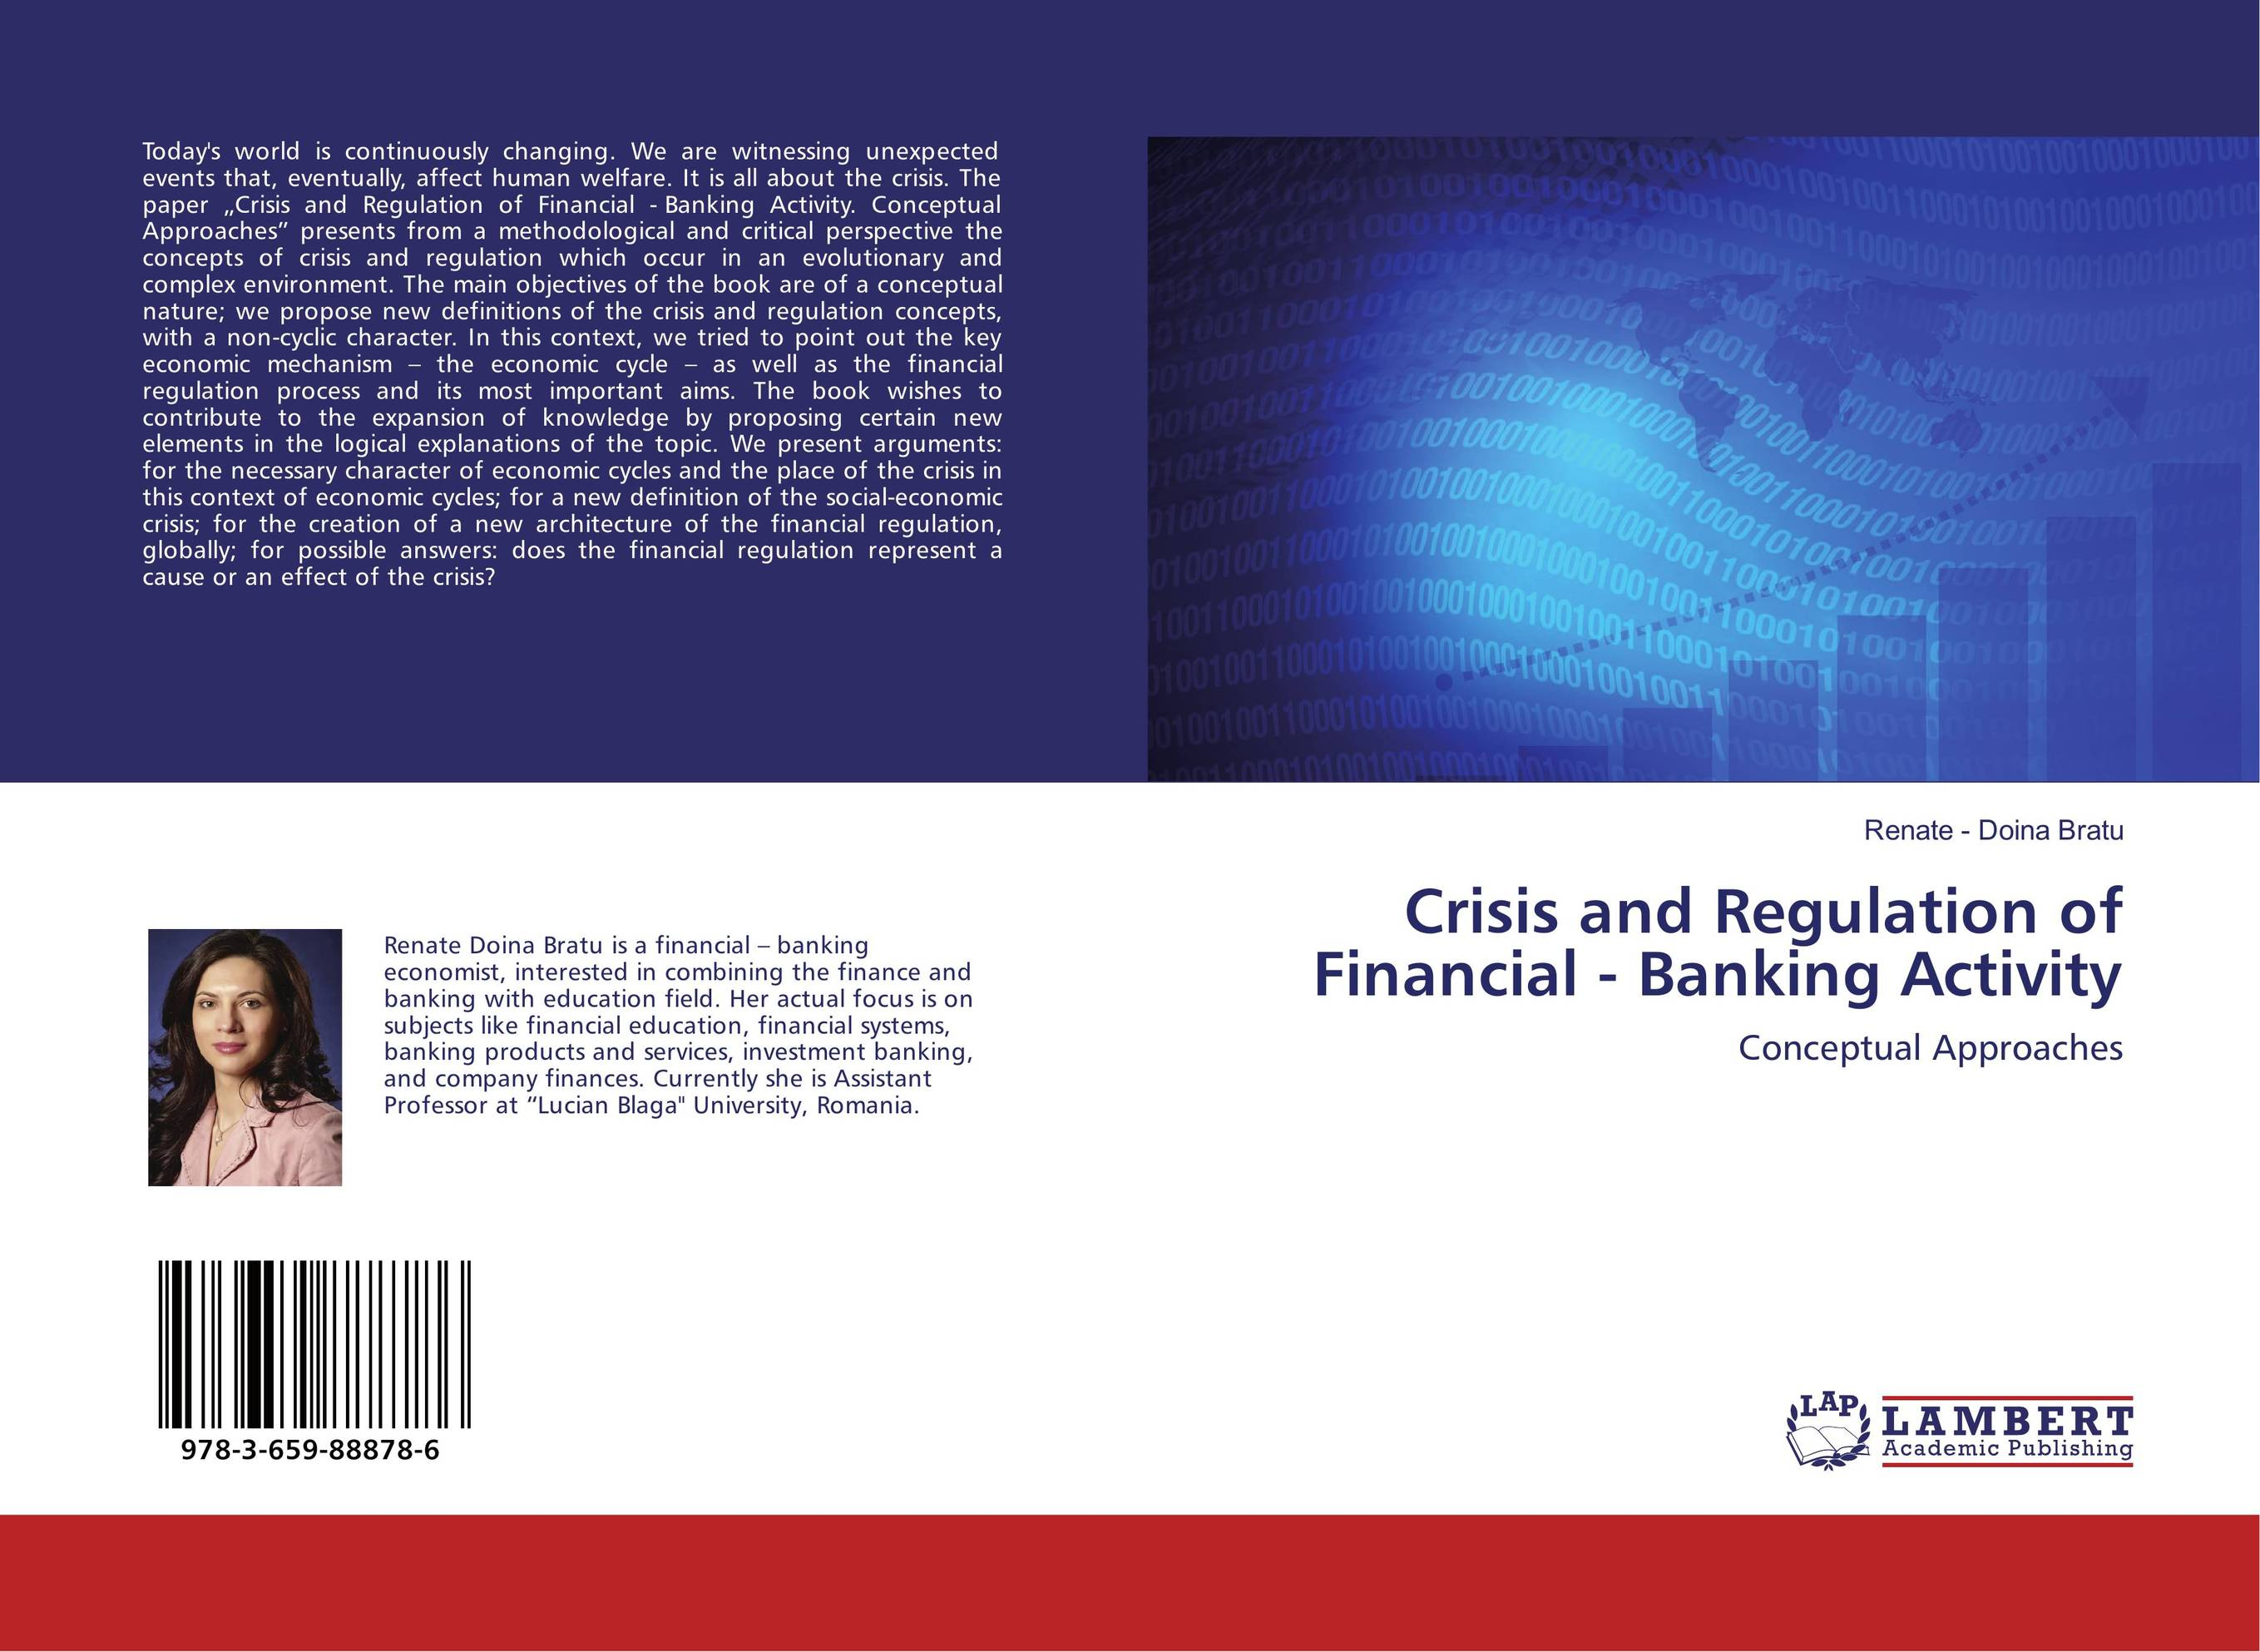 Crisis and Regulation of Financial - Banking Activity from financial crisis to economic and political distress